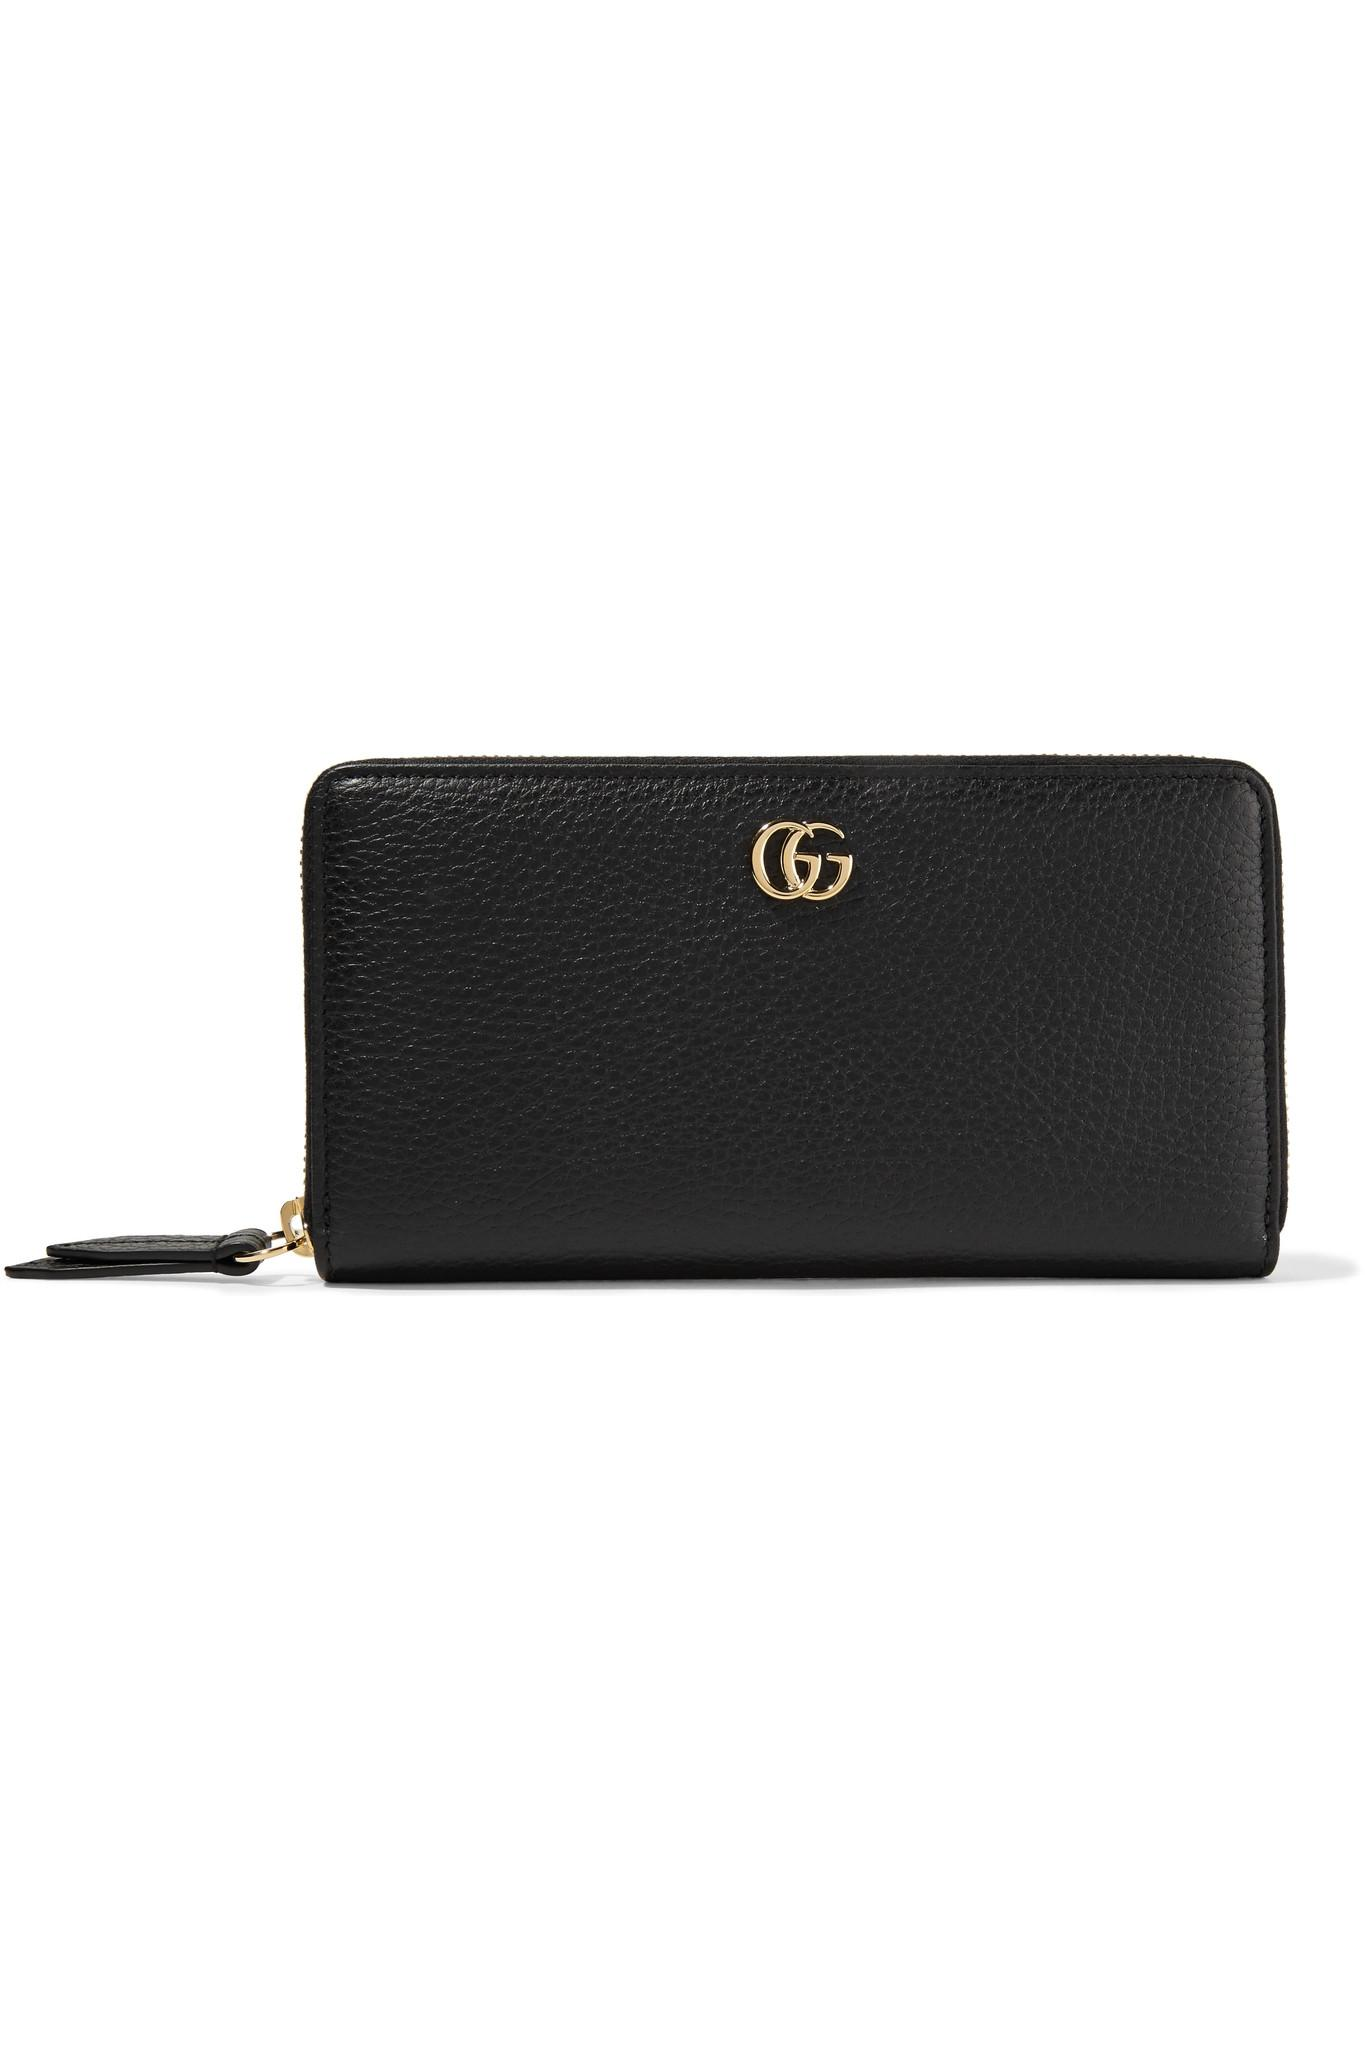 84e653880a8d63 Gucci Marmont Petite Textured-leather Wallet in Black - Save 7% - Lyst